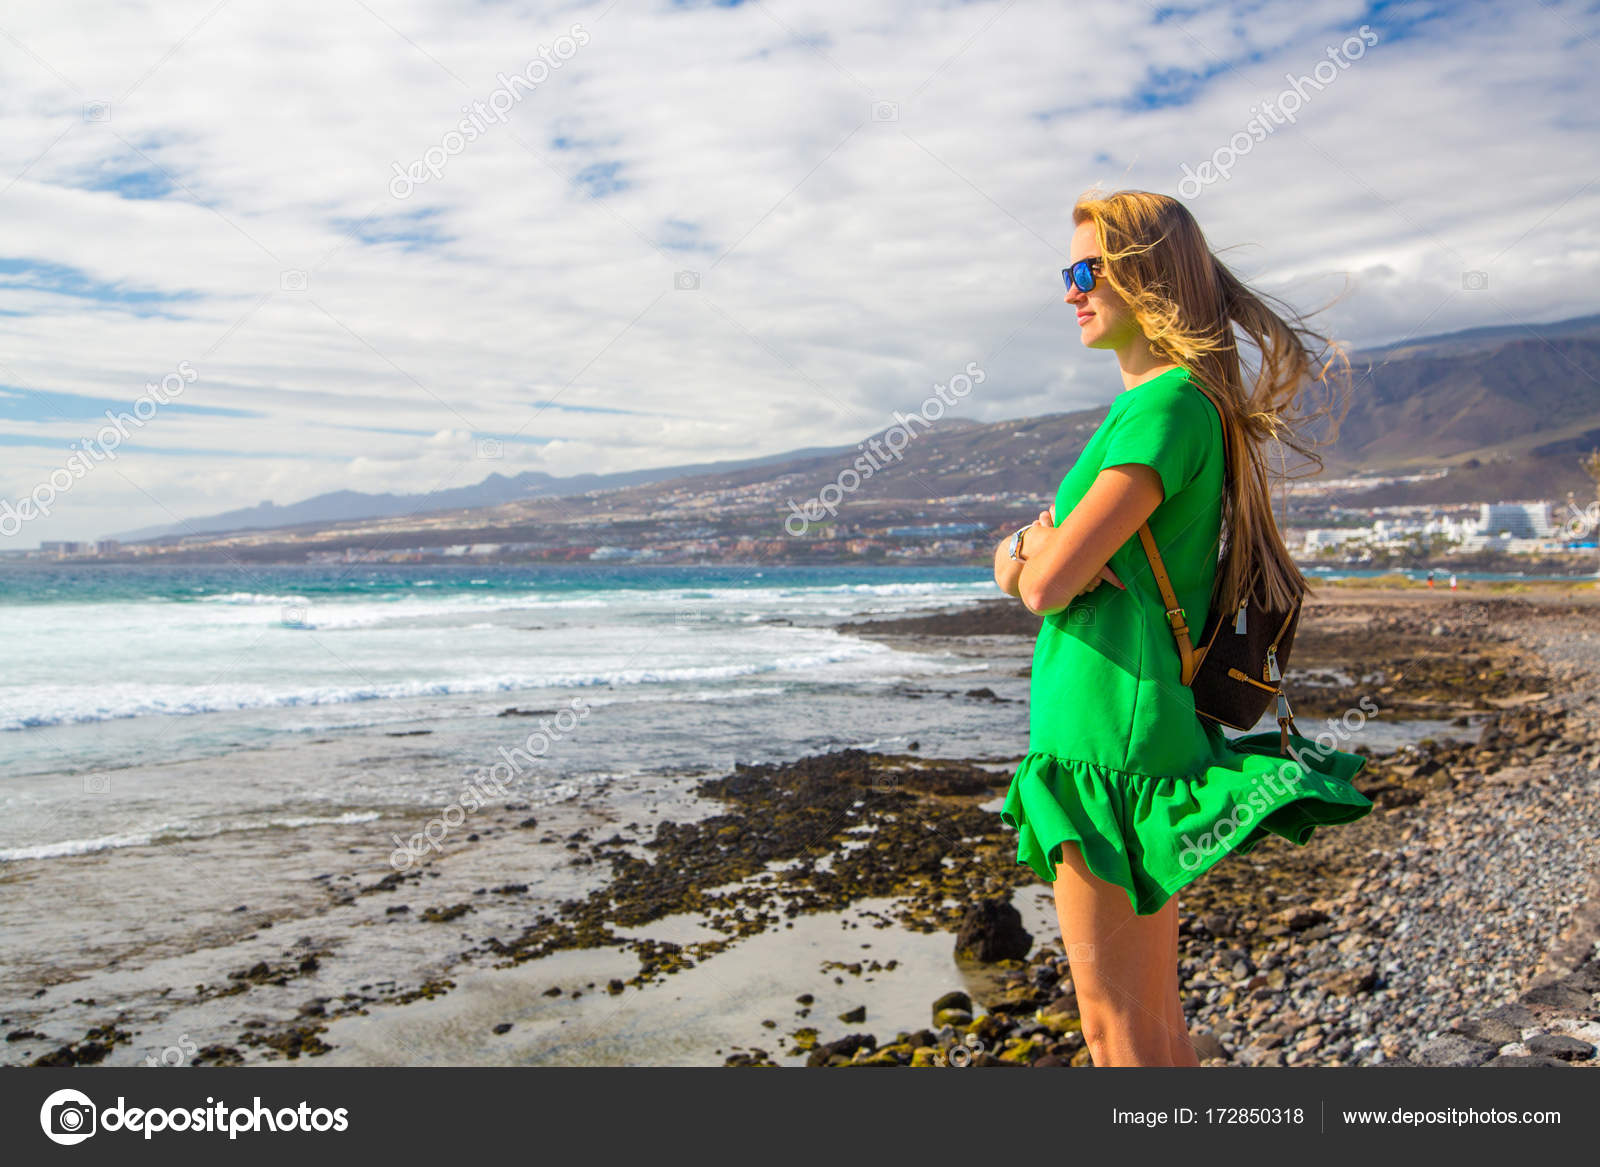 eaaf84062f Young girl standing on the edge of the ocean on Tenerife island. Looking  into the horizon.